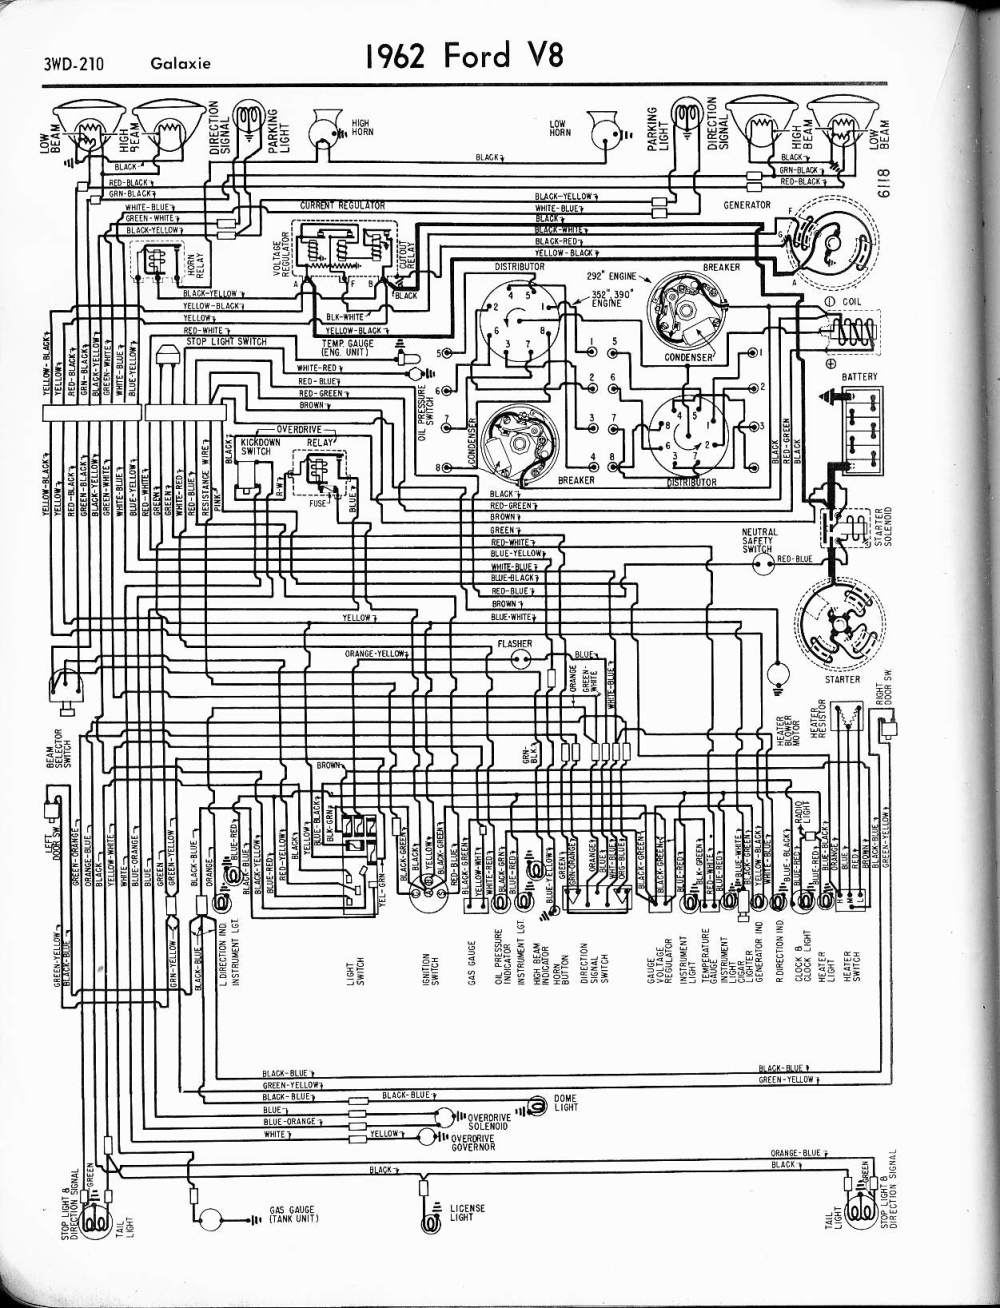 medium resolution of 1997 ford t bird wiring diagram share circuit diagrams 1997 ford thunderbird radio wiring diagram 1997 ford thunderbird wiring diagram